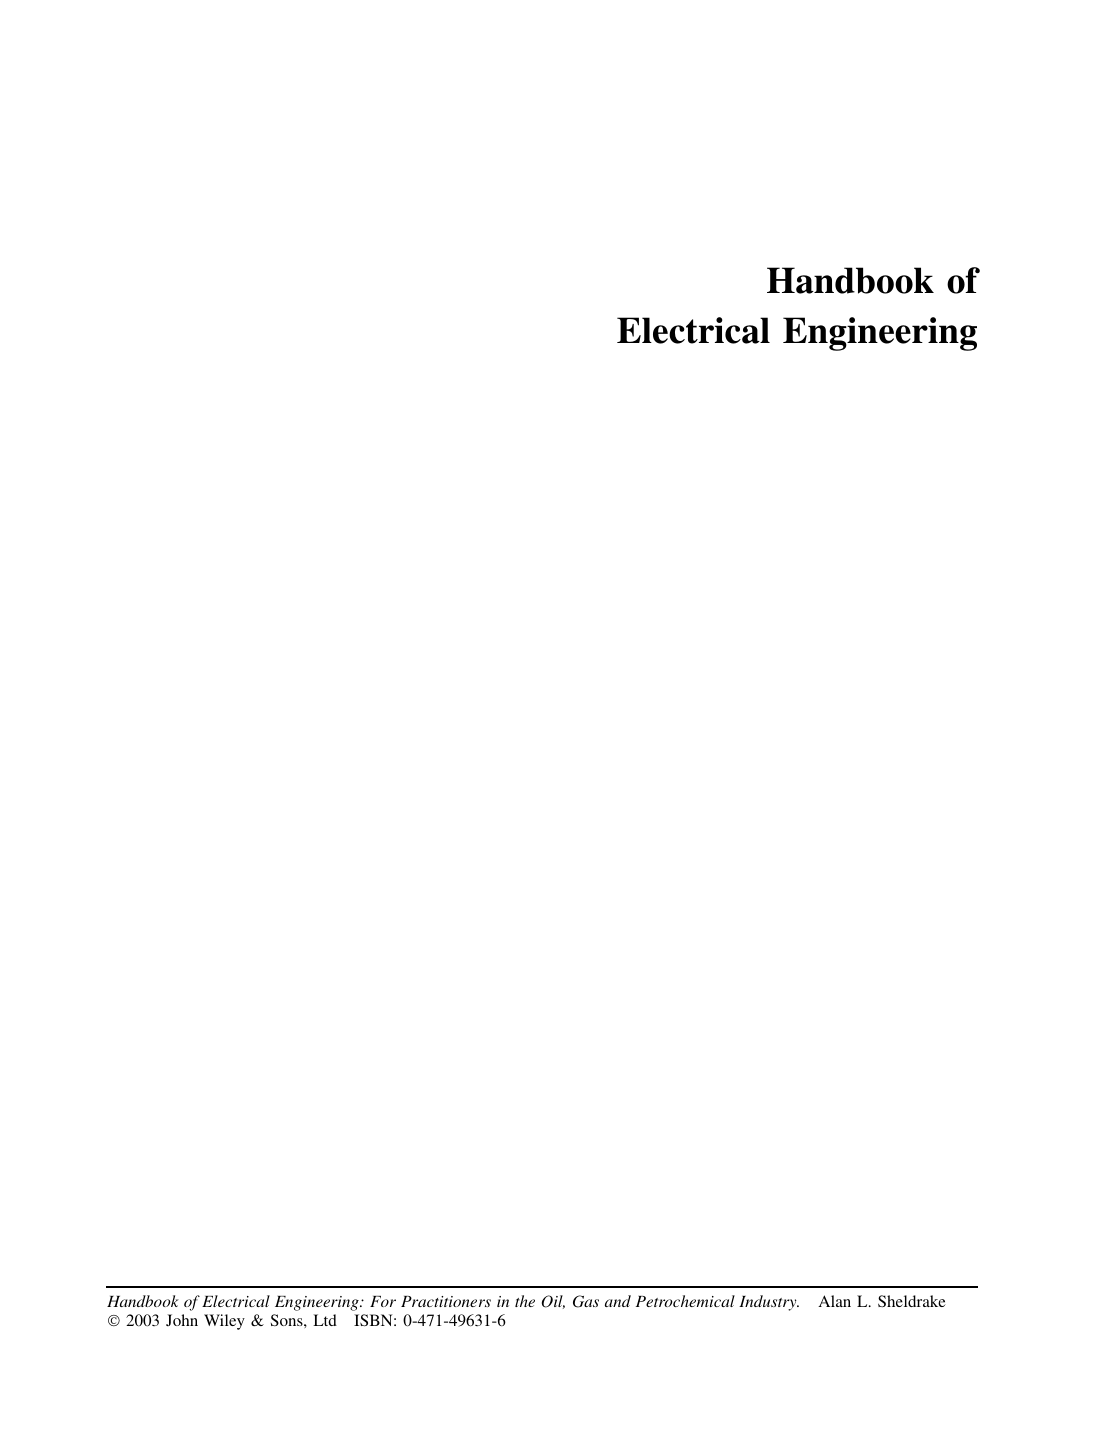 merz drum switch wiring diagram electrical eng hb  electrical eng hb